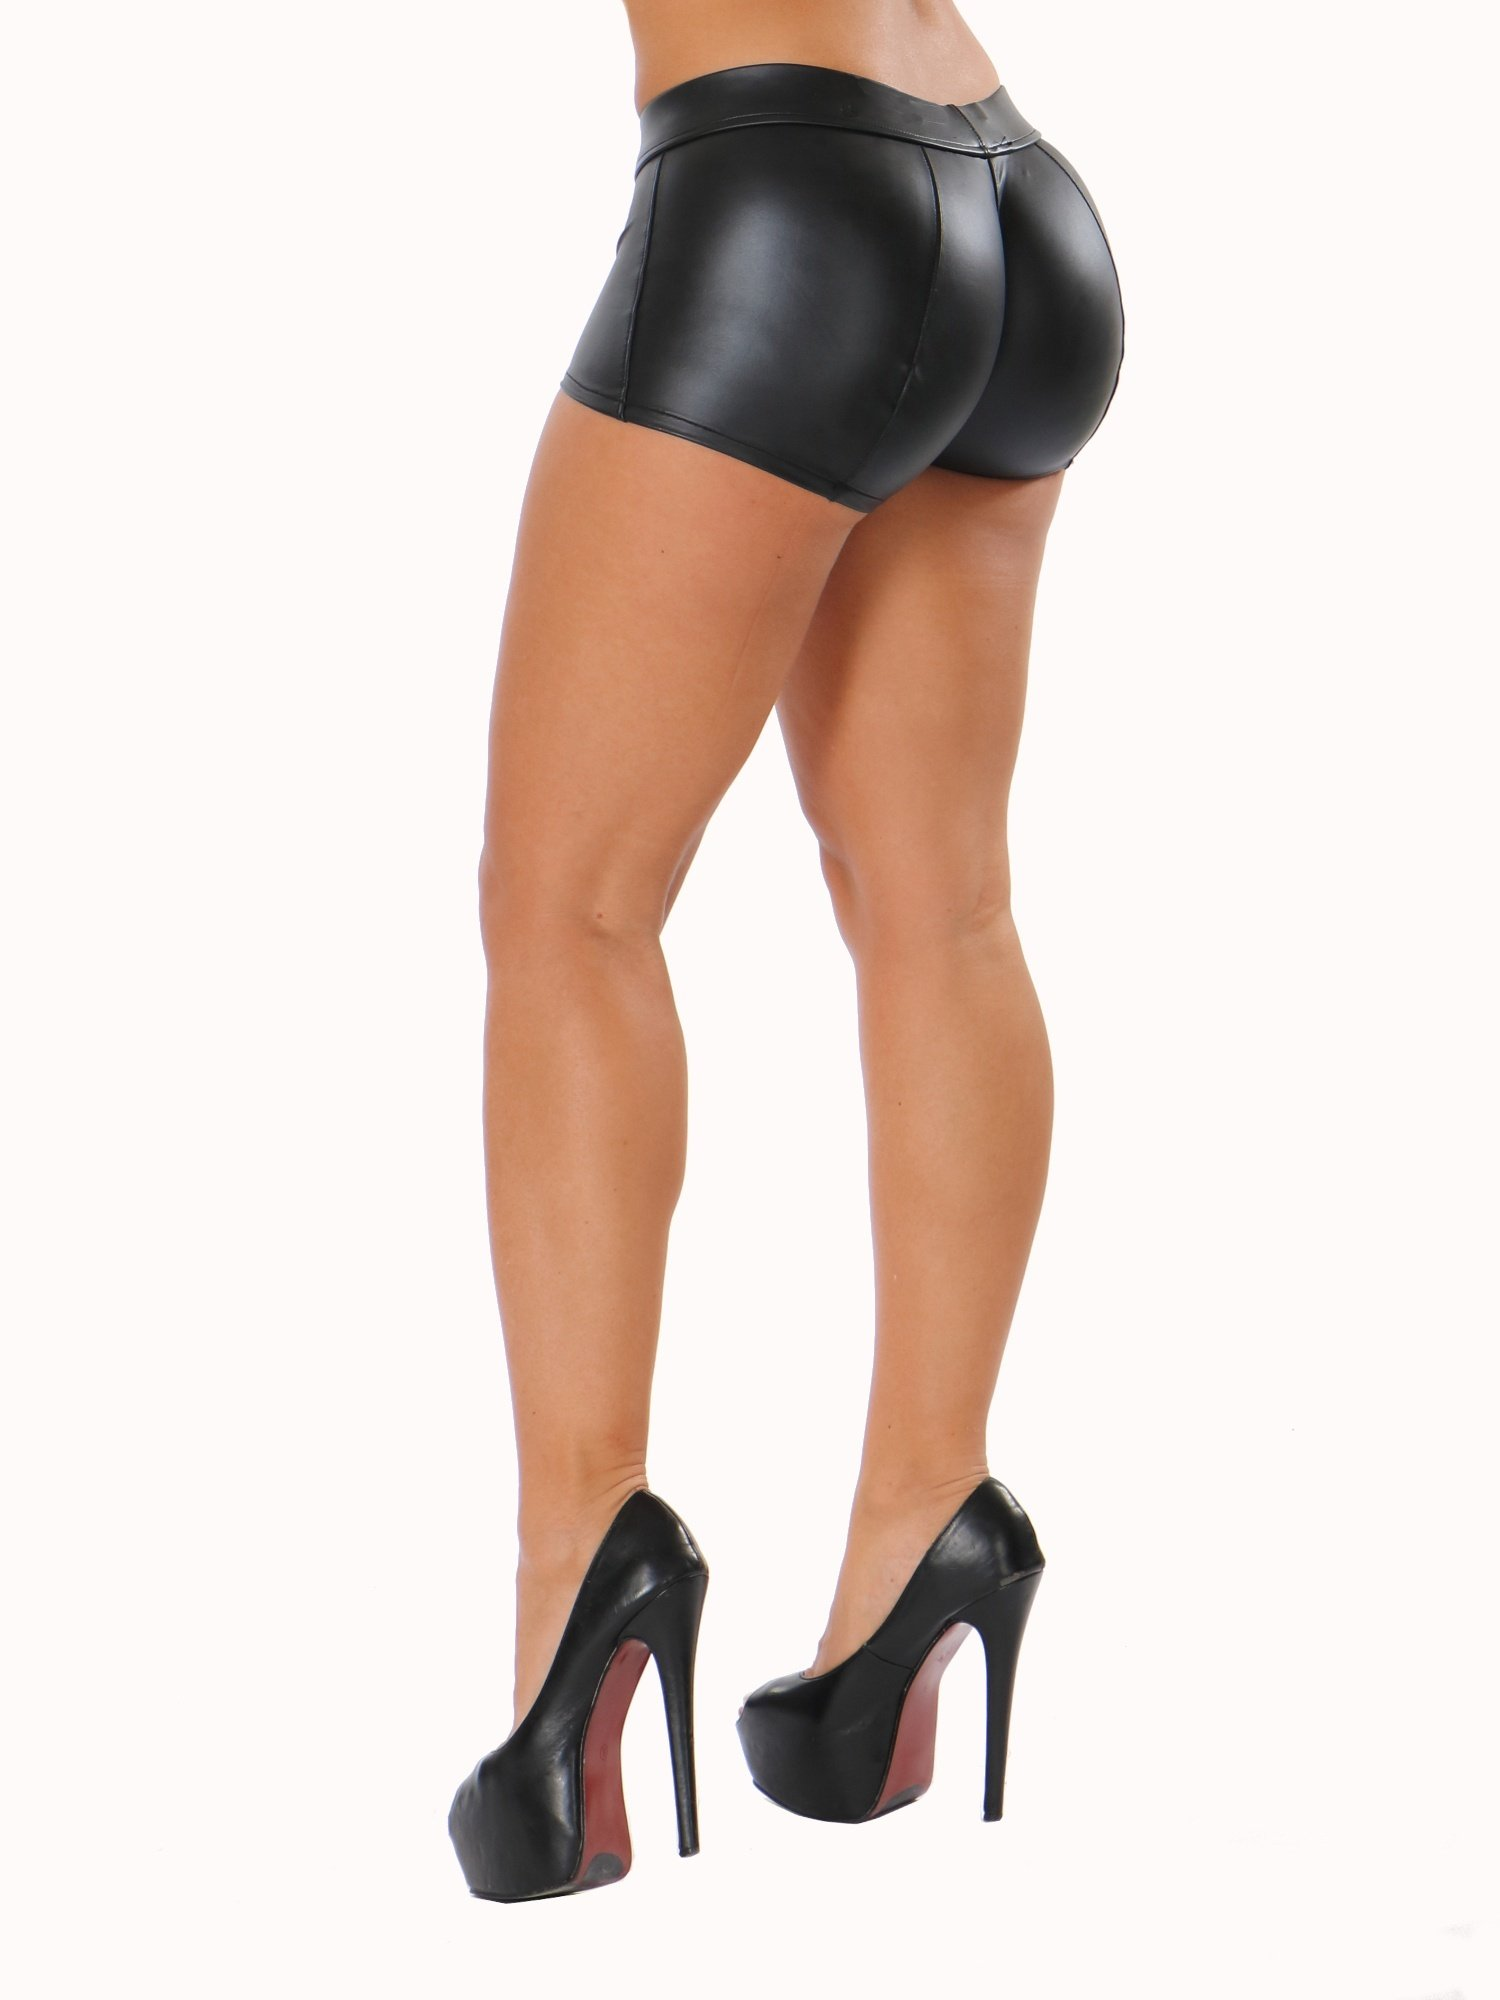 New Charming Women Vogue Balck PU Faux Leather Shorts Ladies Fashion High-waist Stretch Material Black Short Leggings S~3XL